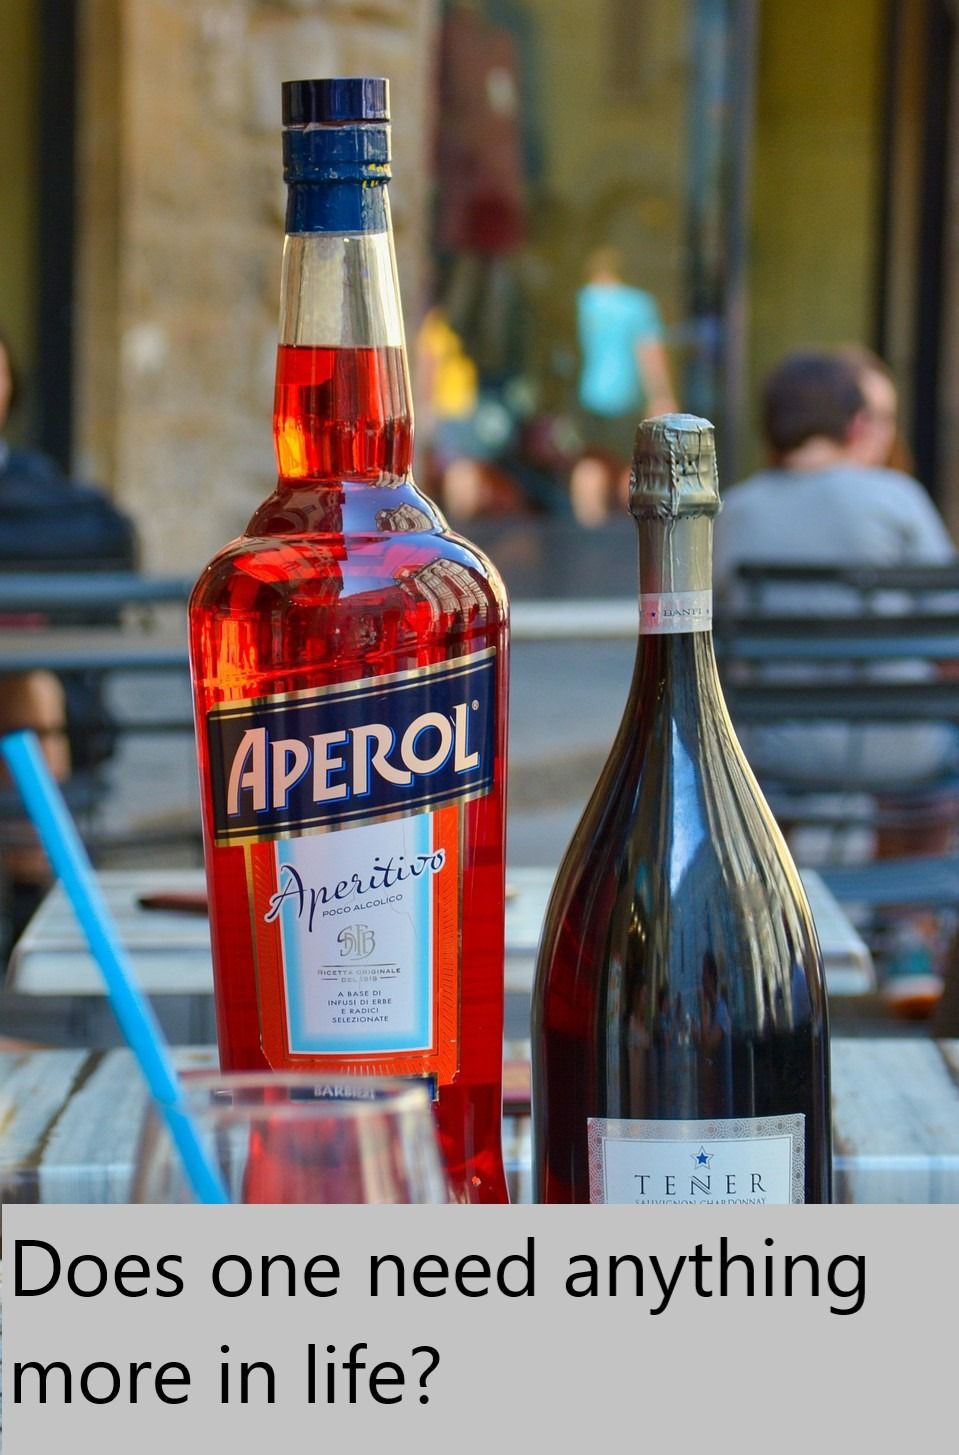 Find The Meaning Of Life In 2020 Aperol Spritz Places In Italy Italian Summer